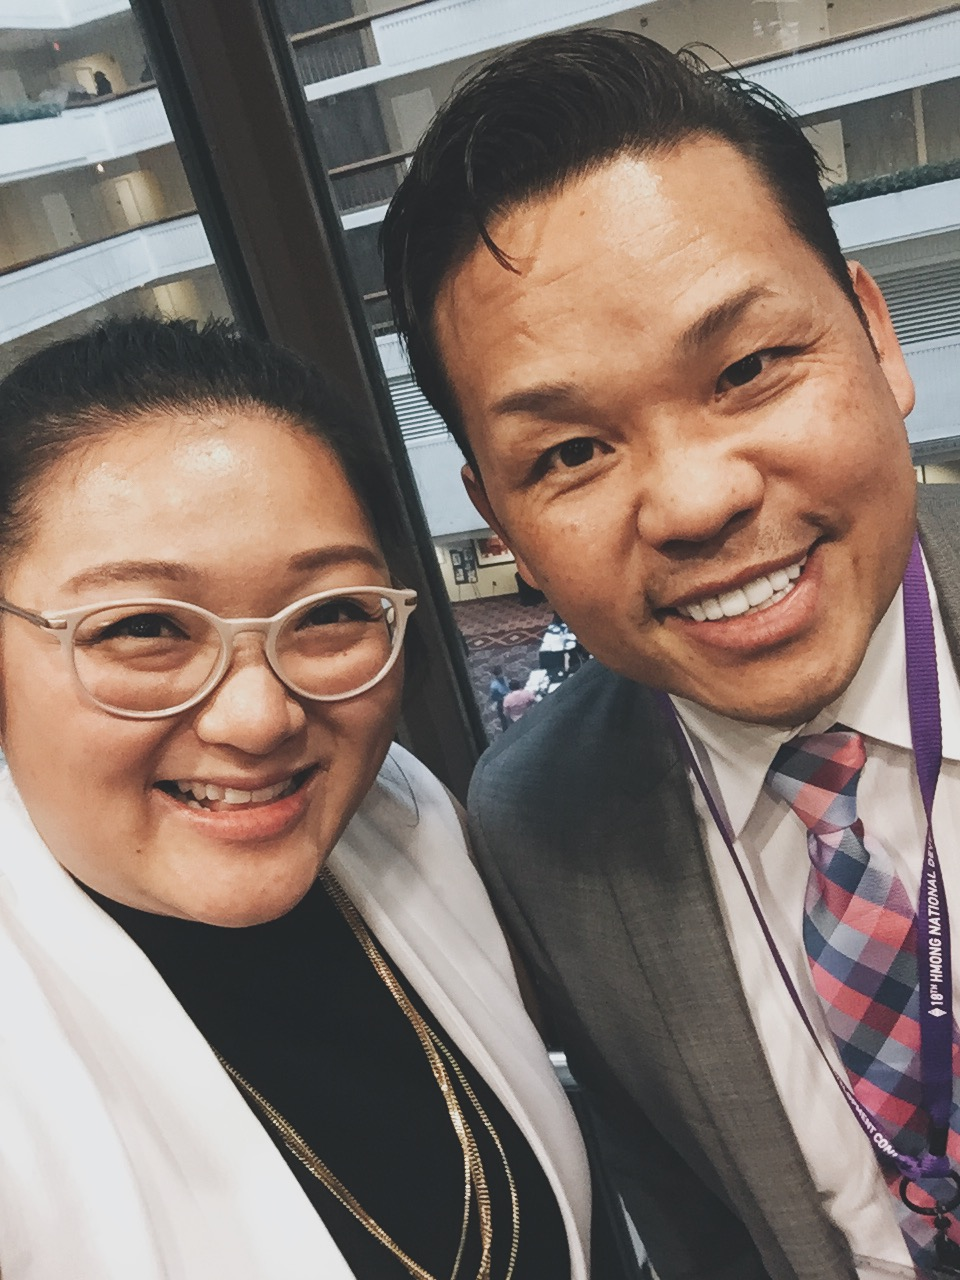 Stuck in the elevator with Hmong Comedian, Tou Ger Bennett-Xiong